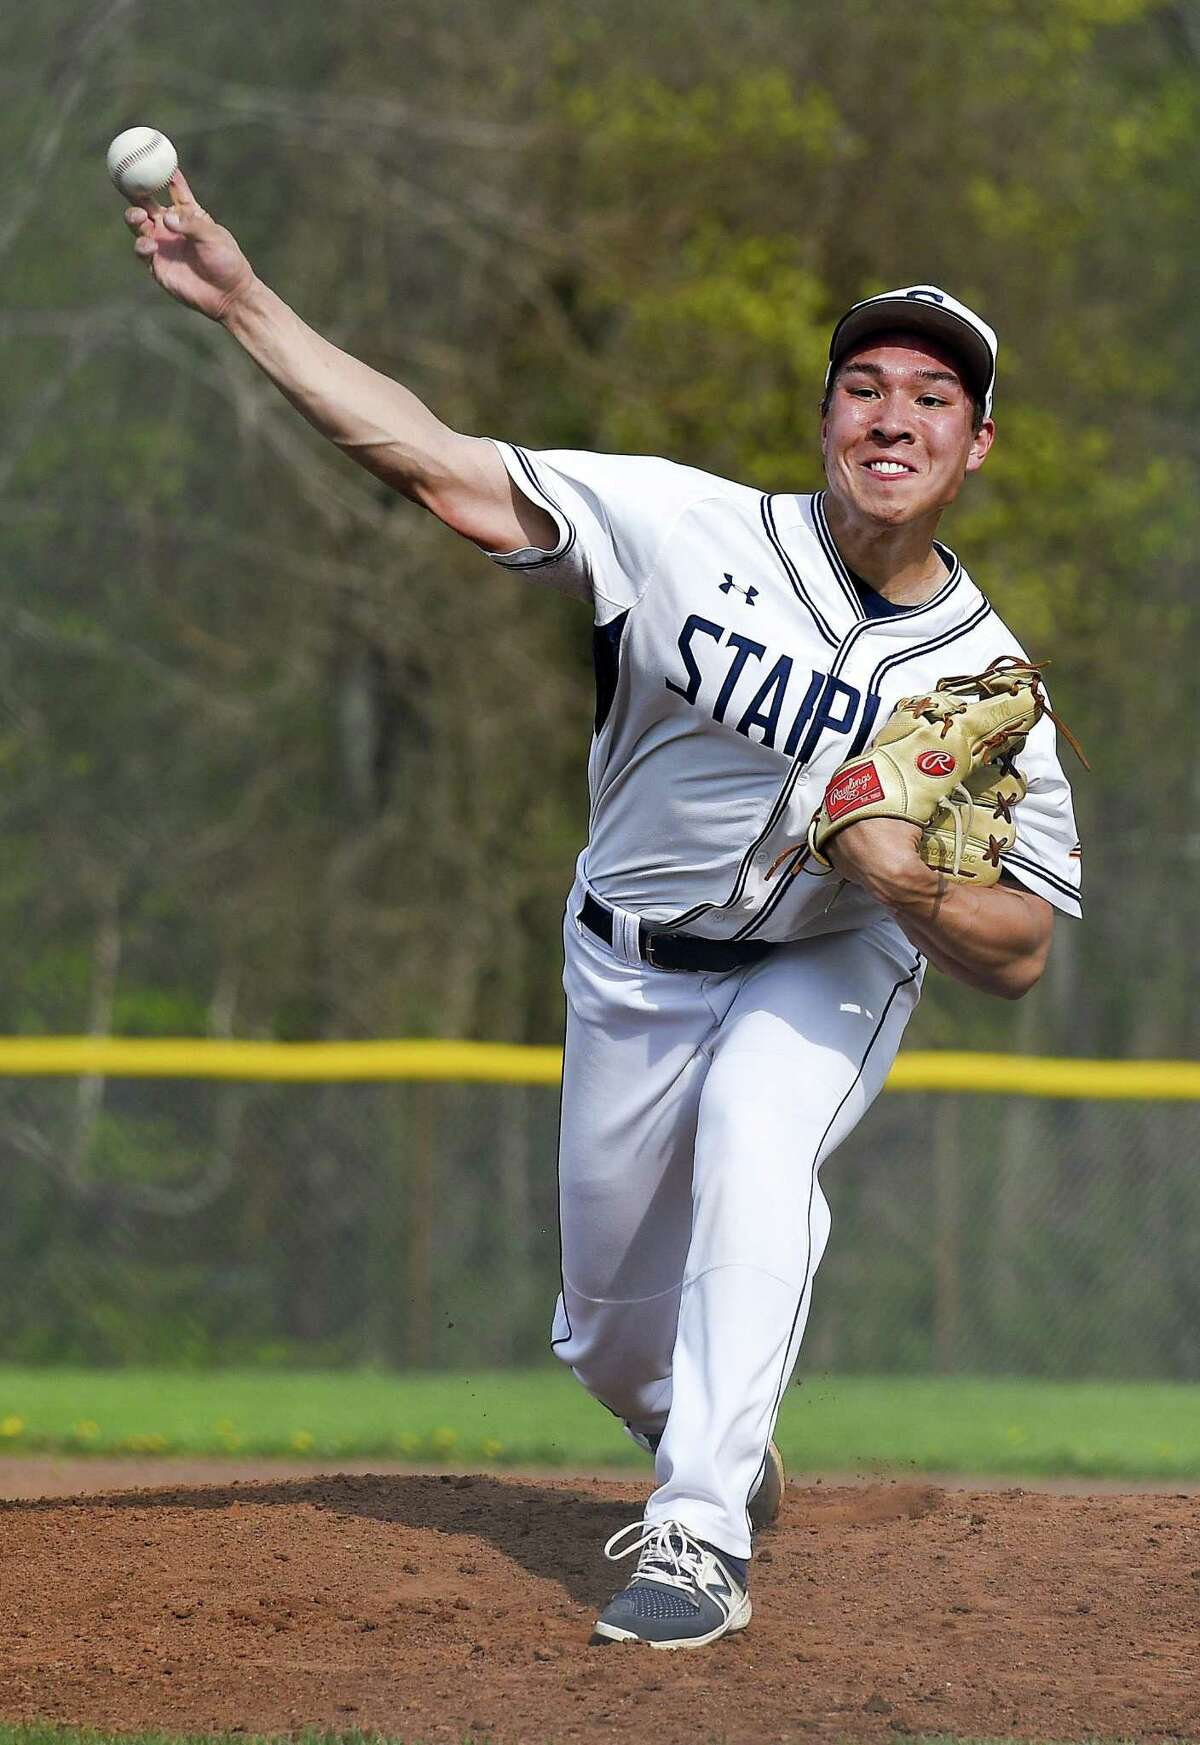 Staples pitcher Chad Knight makes his delivery against Darien in the top of the second inning of a FCIAC baseball game on May 4.